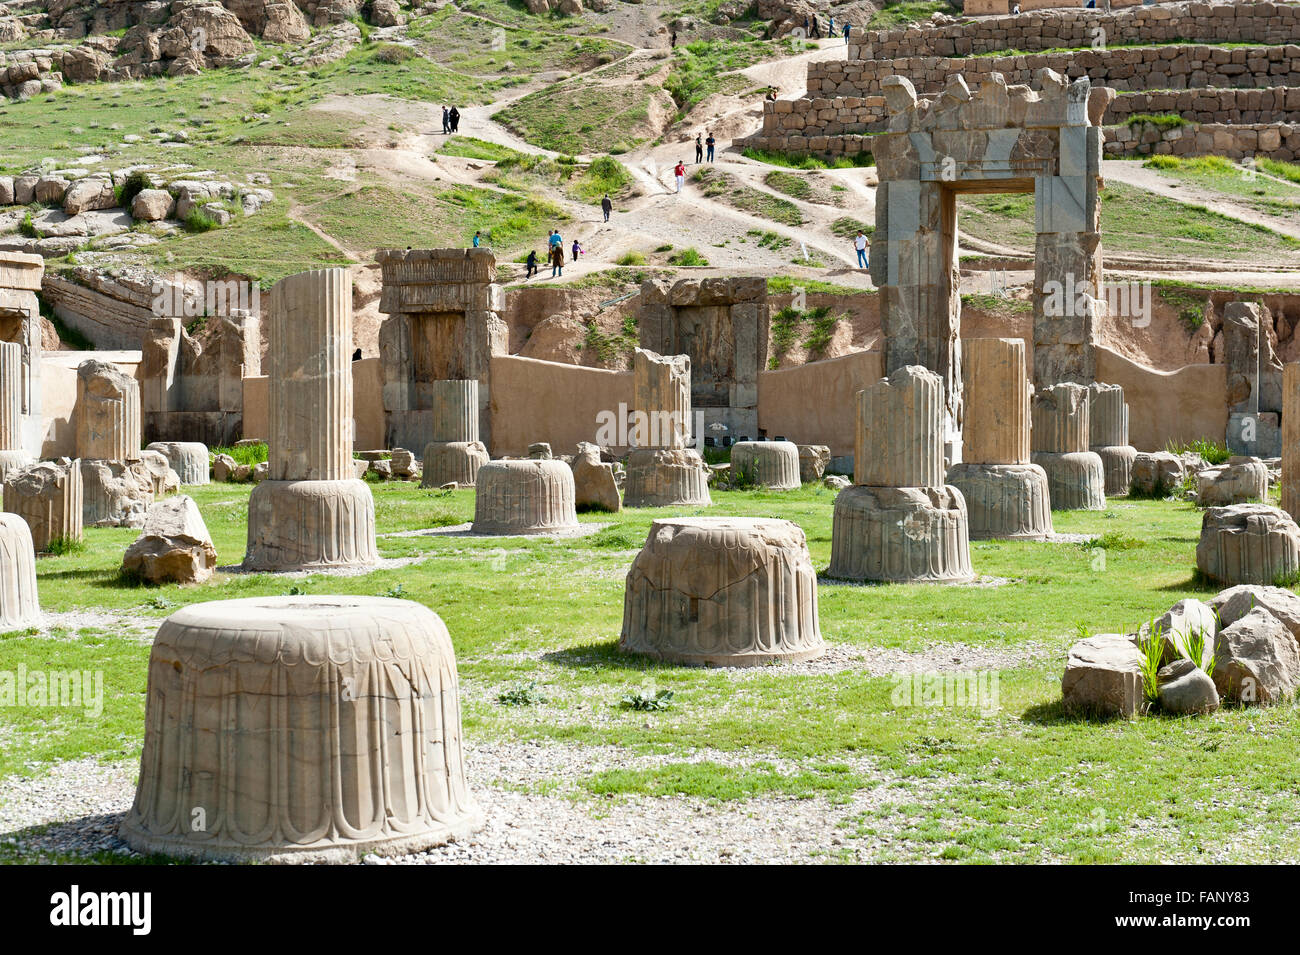 Ruins, bases of columns, Hundred Column Hall, ancient Persian city of Persepolis, UNESCO World Heritage Site, Fars - Stock Image